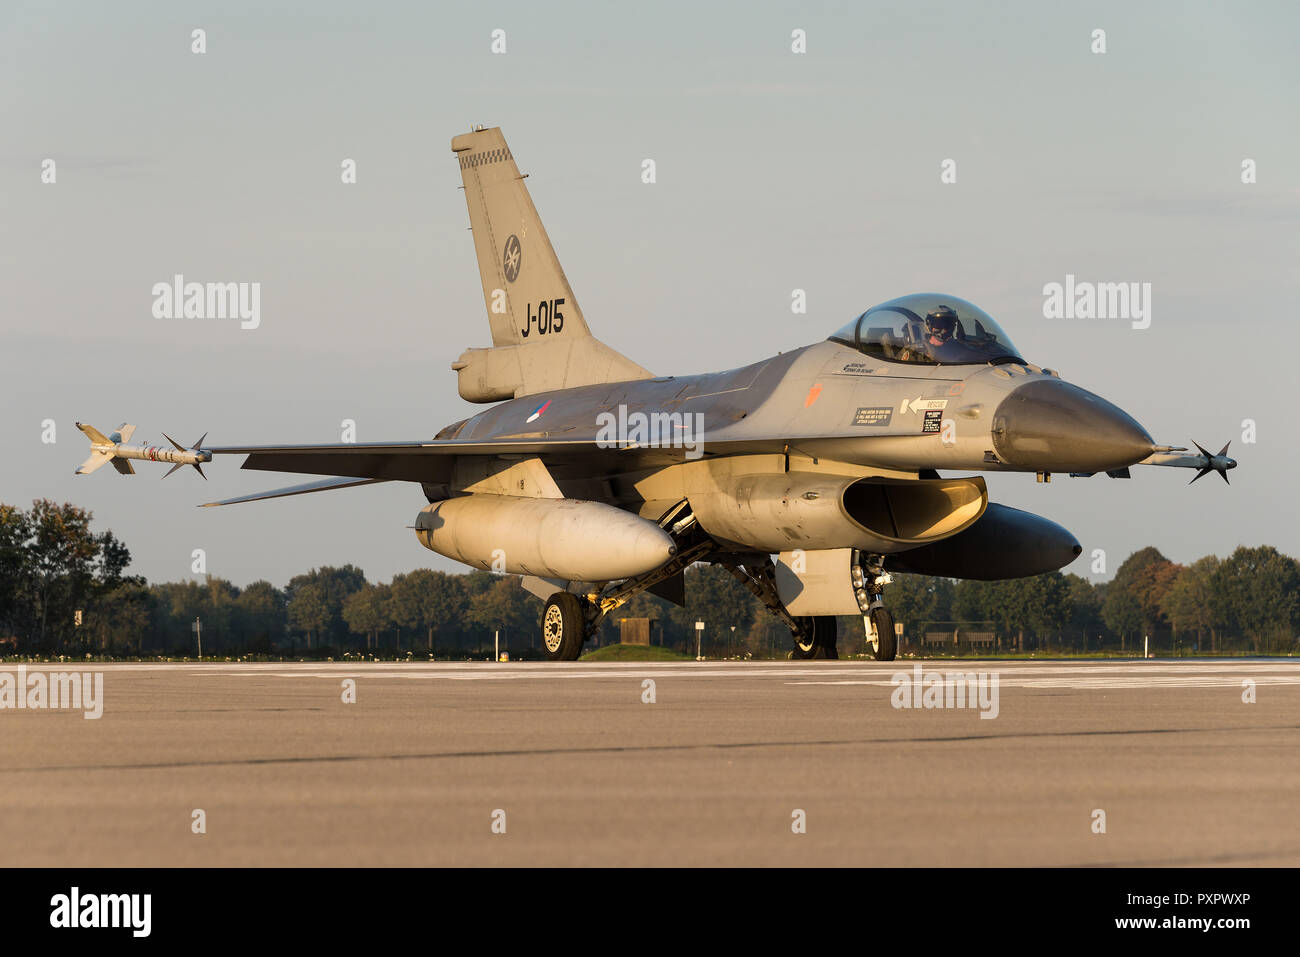 A General Dynamics F-16 Fighting Falcon fighter jet of the Royal Netherlands Air Force at the Volkel Air Base. - Stock Image